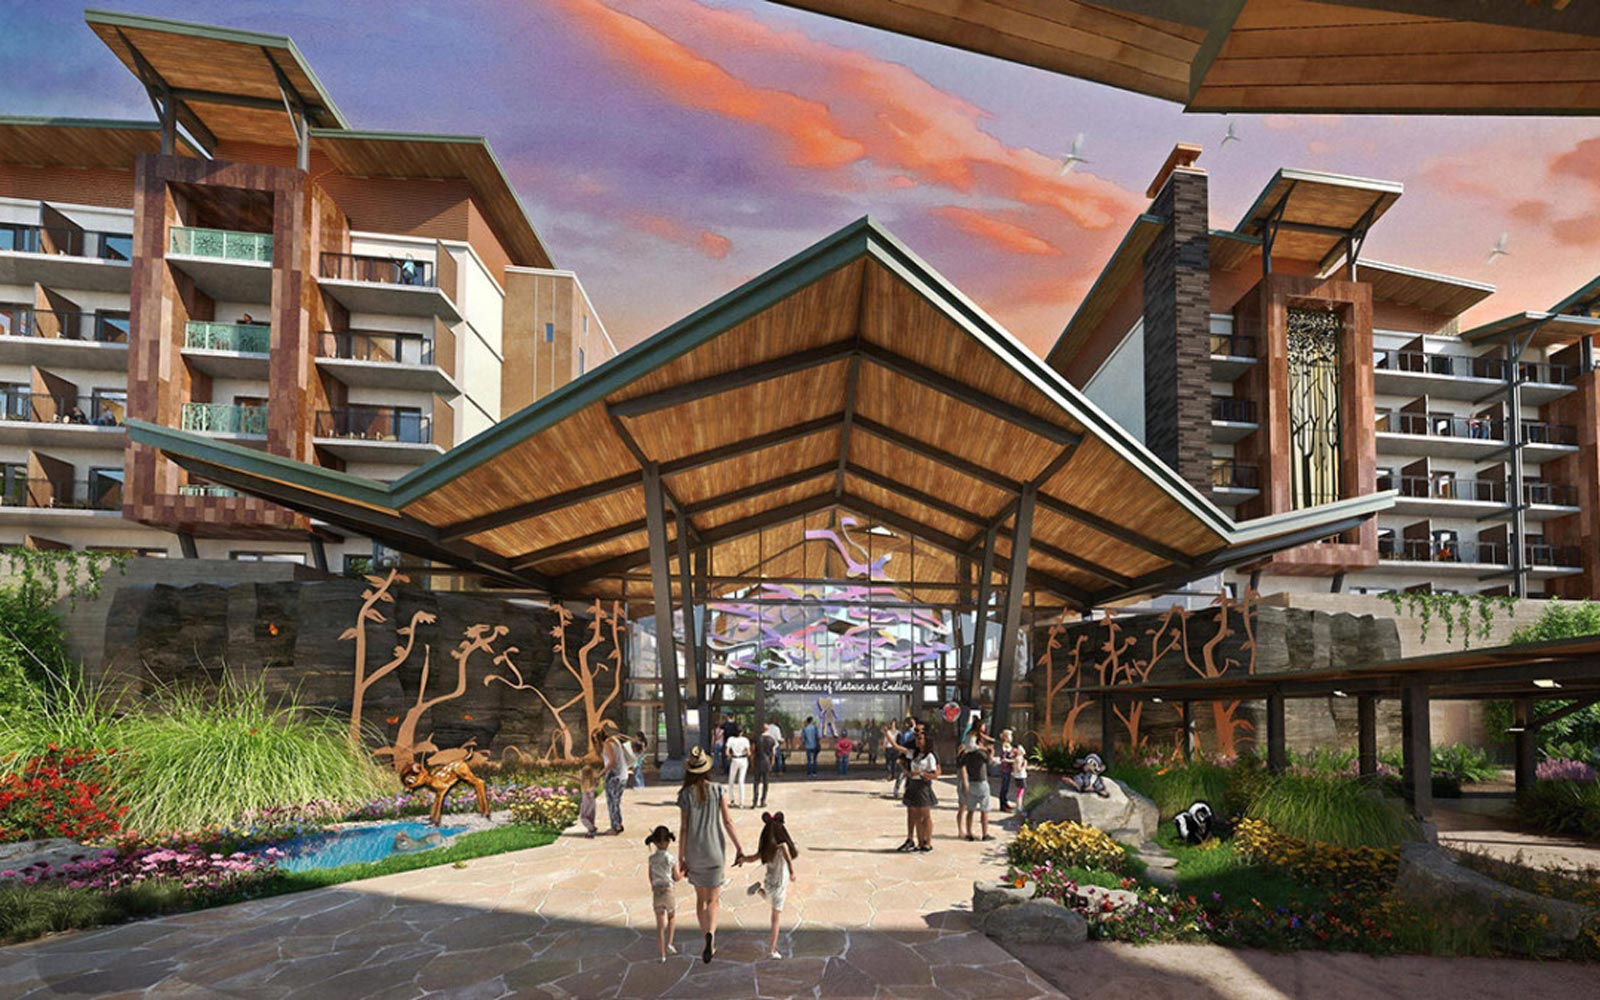 Disney World's New Luxury Hotel Will Have Chic Tree Houses and Waterfront A-frame Cabins